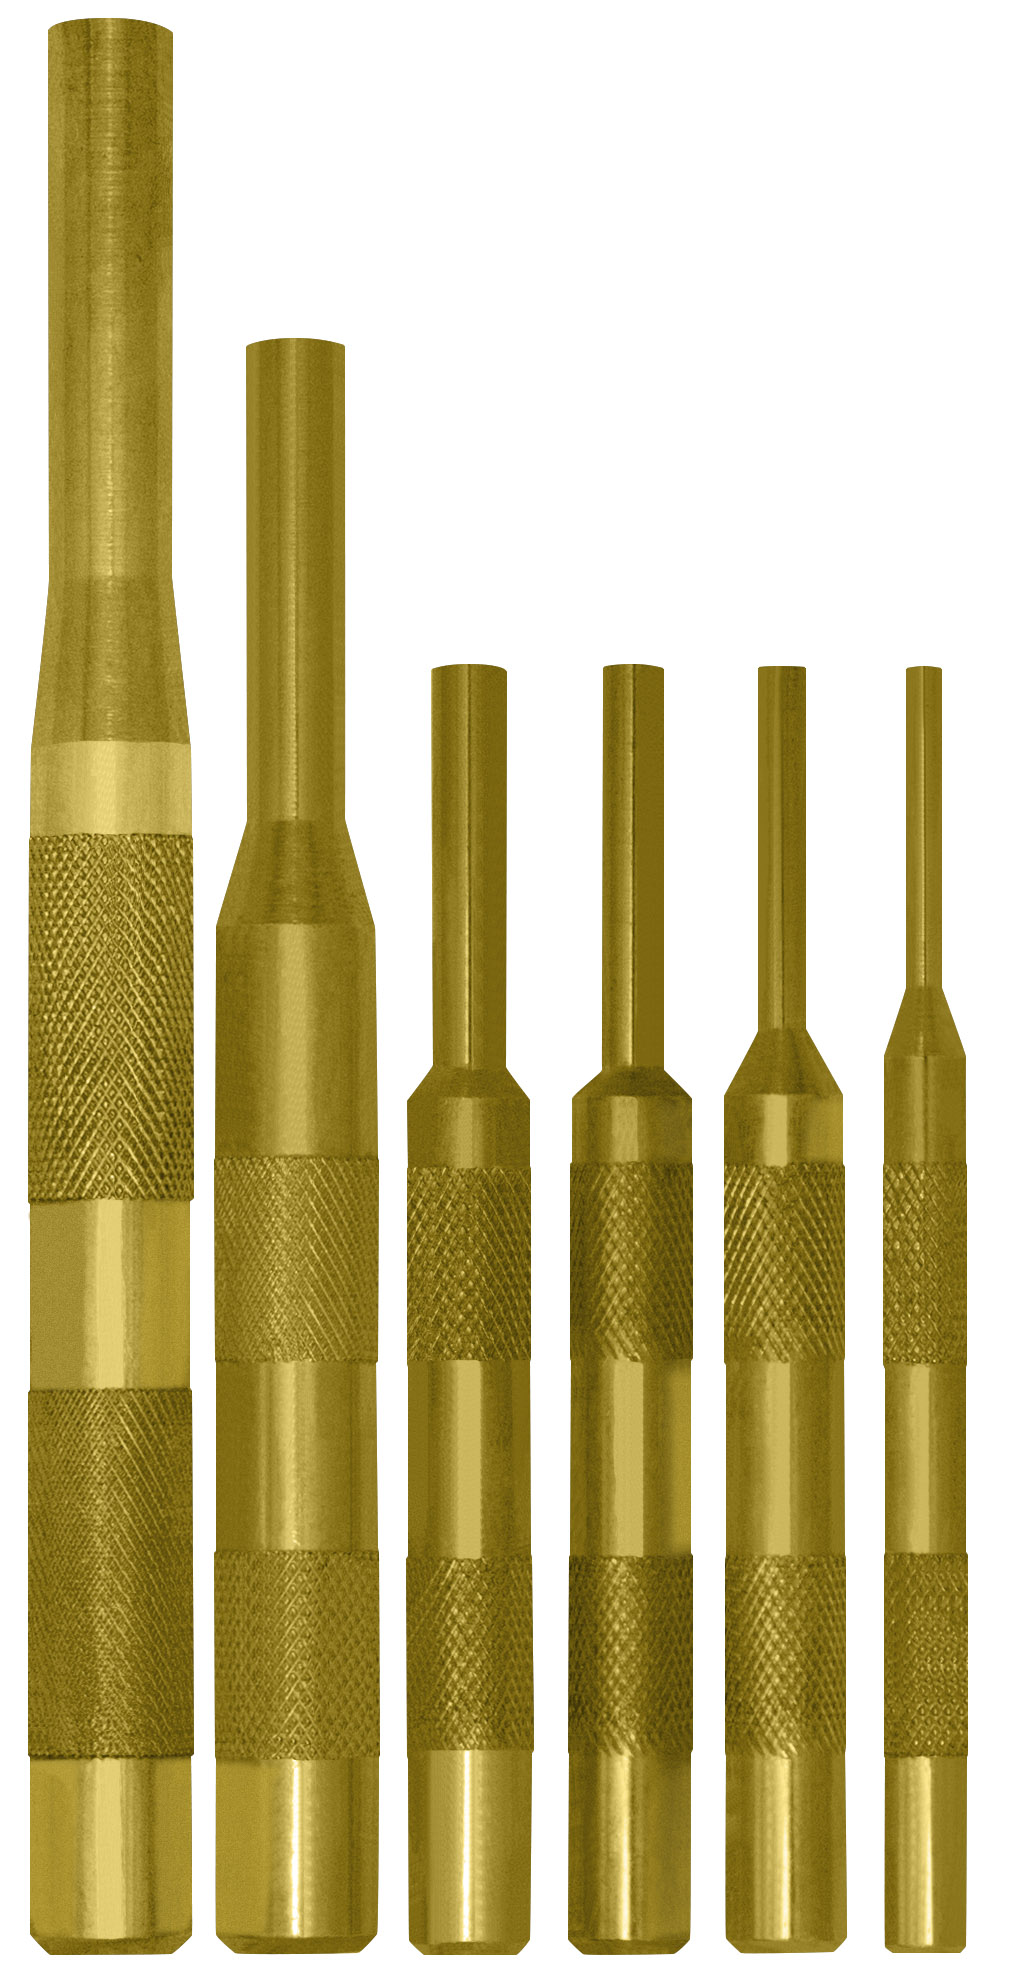 1//8-5//16 Brass Pin Drive Punch Set in a Pouch SWANLAKE 8-Piece Brass Pin Punch Set